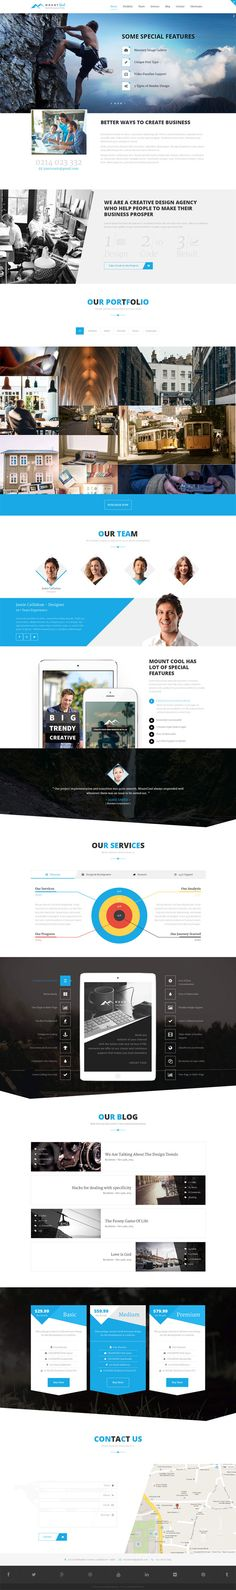 #Mountcool, a perfect one page parallax template with a separate blog section suitable for product promotion, photographer, web design agency, event promotion, freelance and personal website. The template consists of newsletter section, social icons with tool tips, google map, twitter section, pricing table, customer testimonials, html short-codes and more will help you to build websites in minutes…#html #template